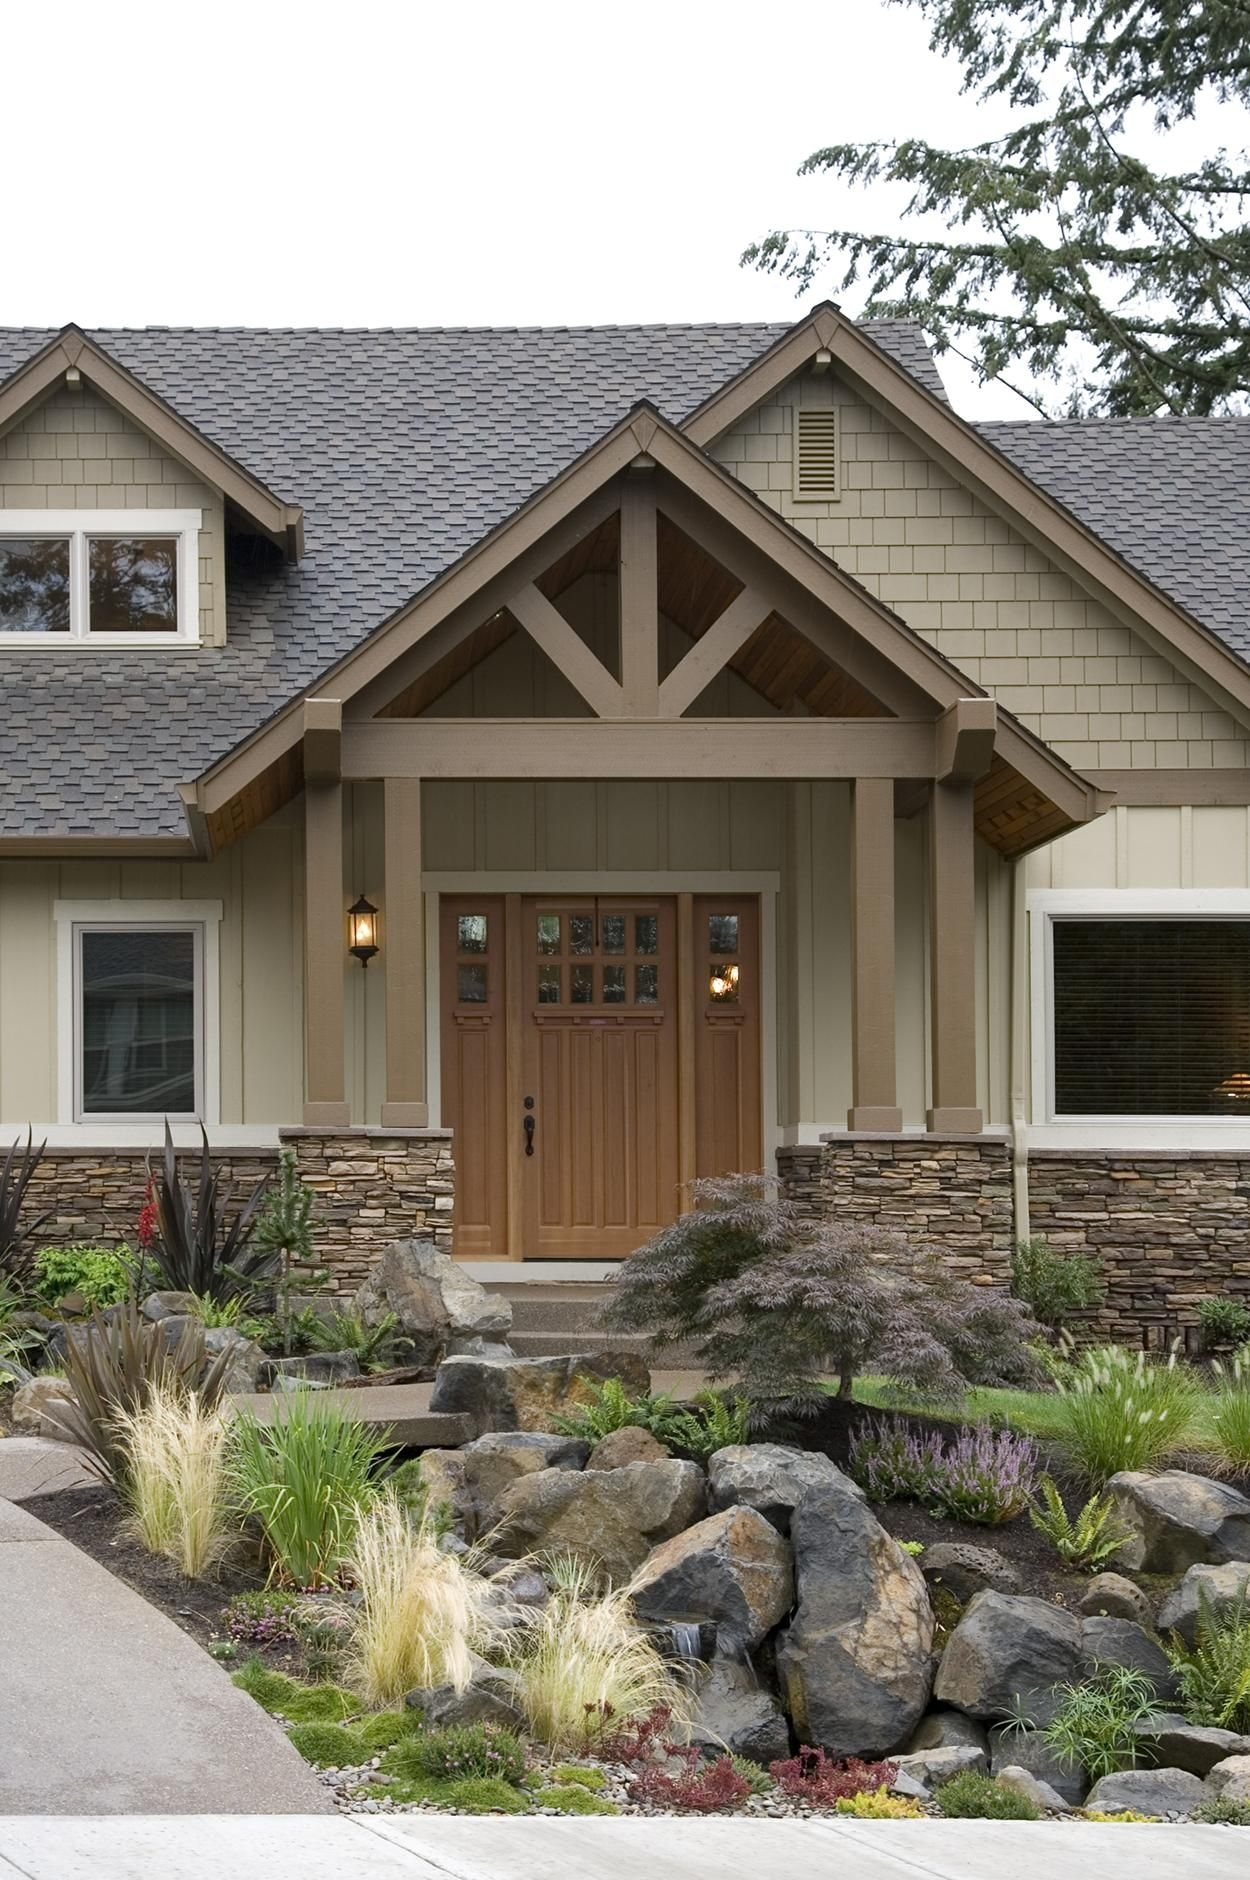 Rustic Mountain House Plans with Walkout Basement Beautiful Pedro M Pfmercado On Pinterest